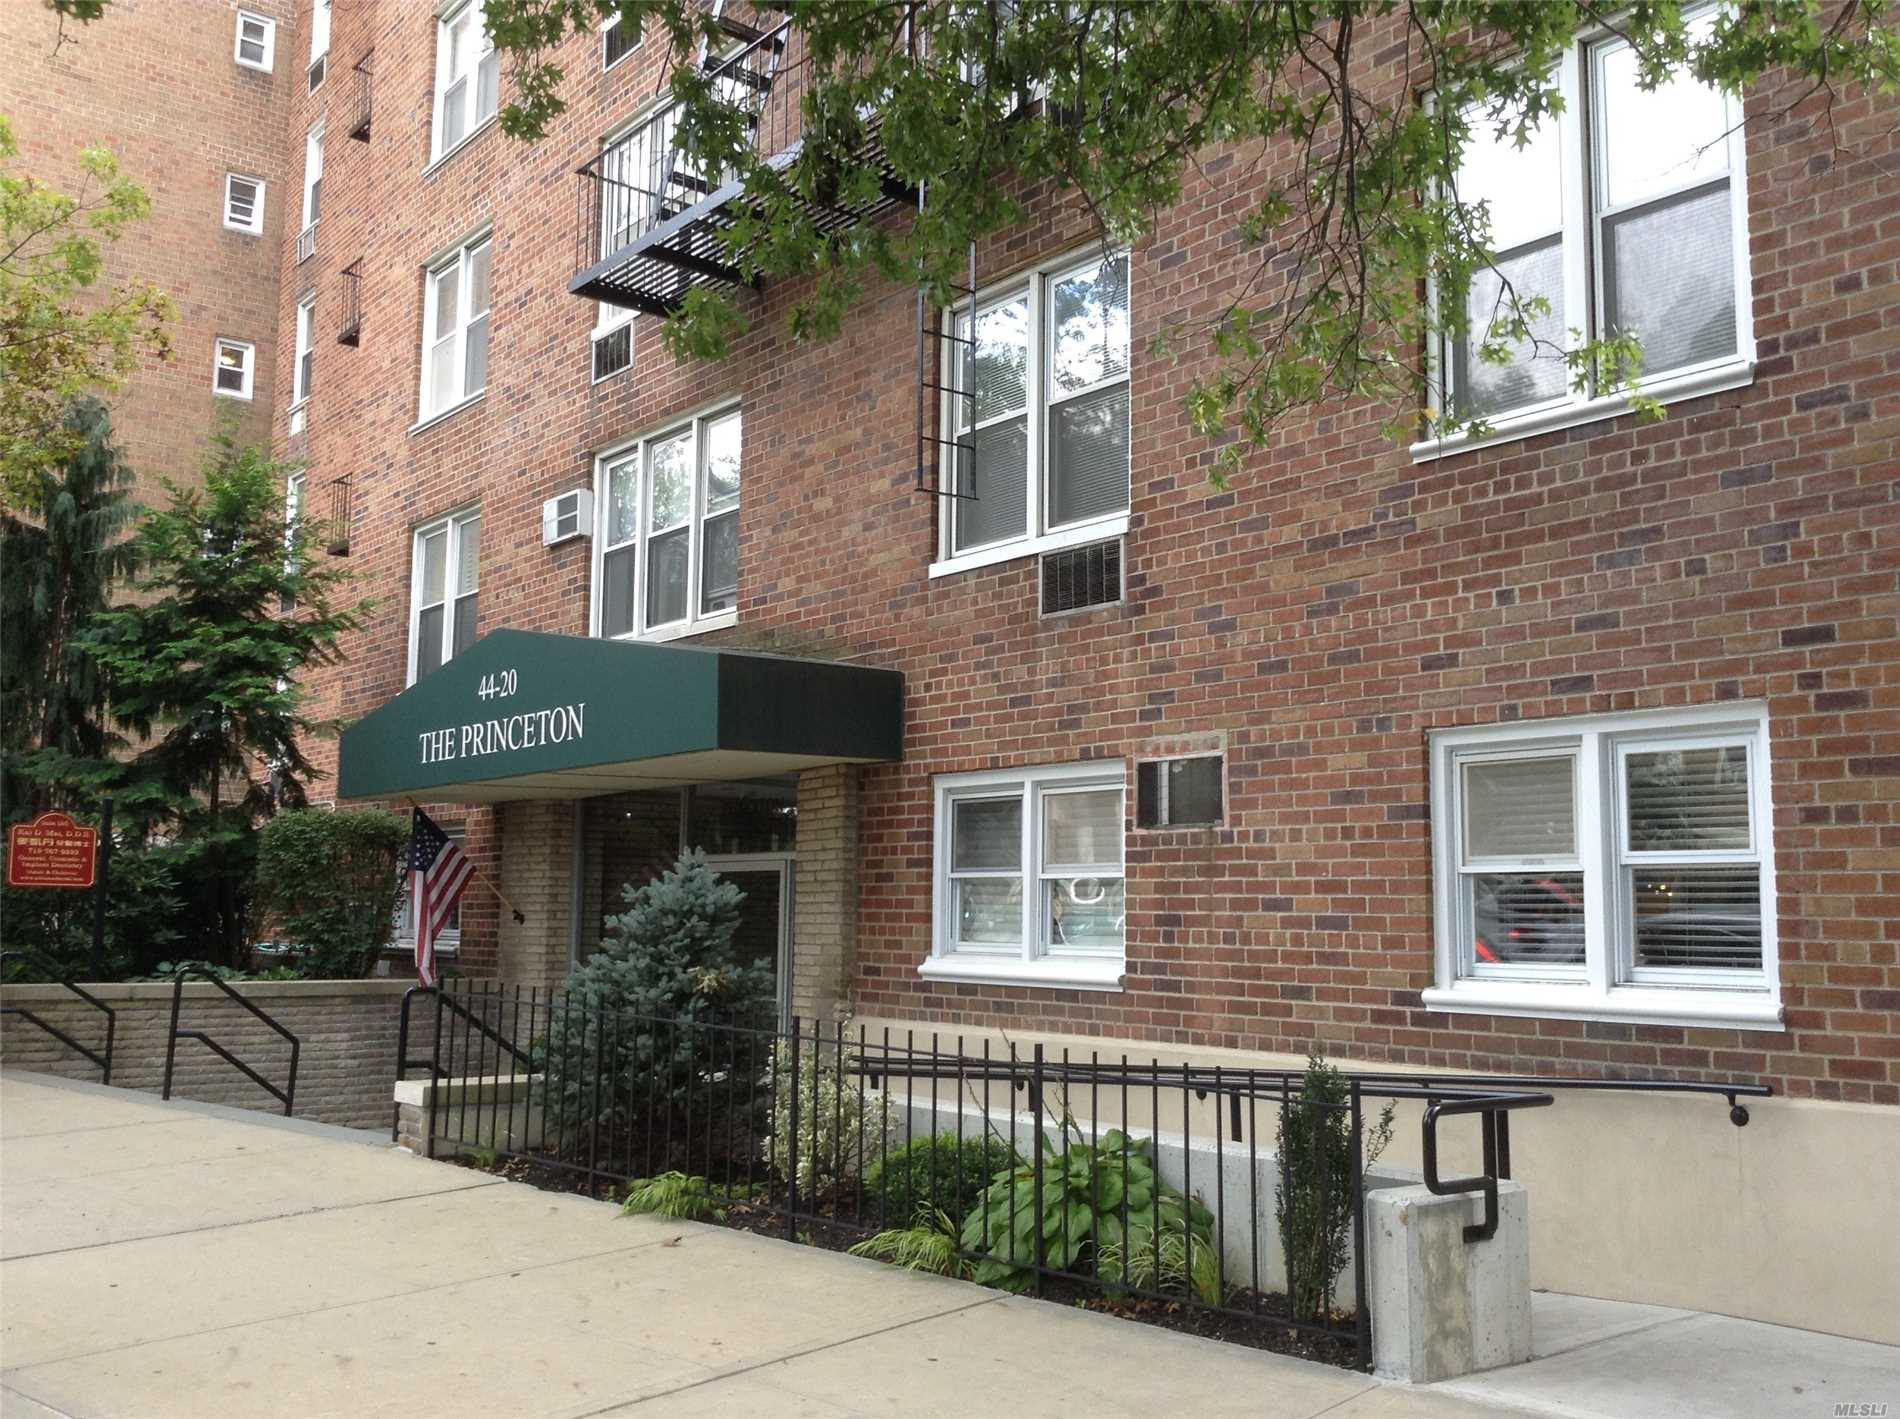 Outdoor Parking Spot Included With This 3rd Floor Studio In The Princeton Building. Elevator Building With Laundry In Basement Heat Included. Extra Closets, Kitchen Counter And In Wall Air Conditioner. Monthly Fee For Parking Included With Maintenance (391.13 + 65.00 = $456.13 Total) Close To Lirr Buses & Shops